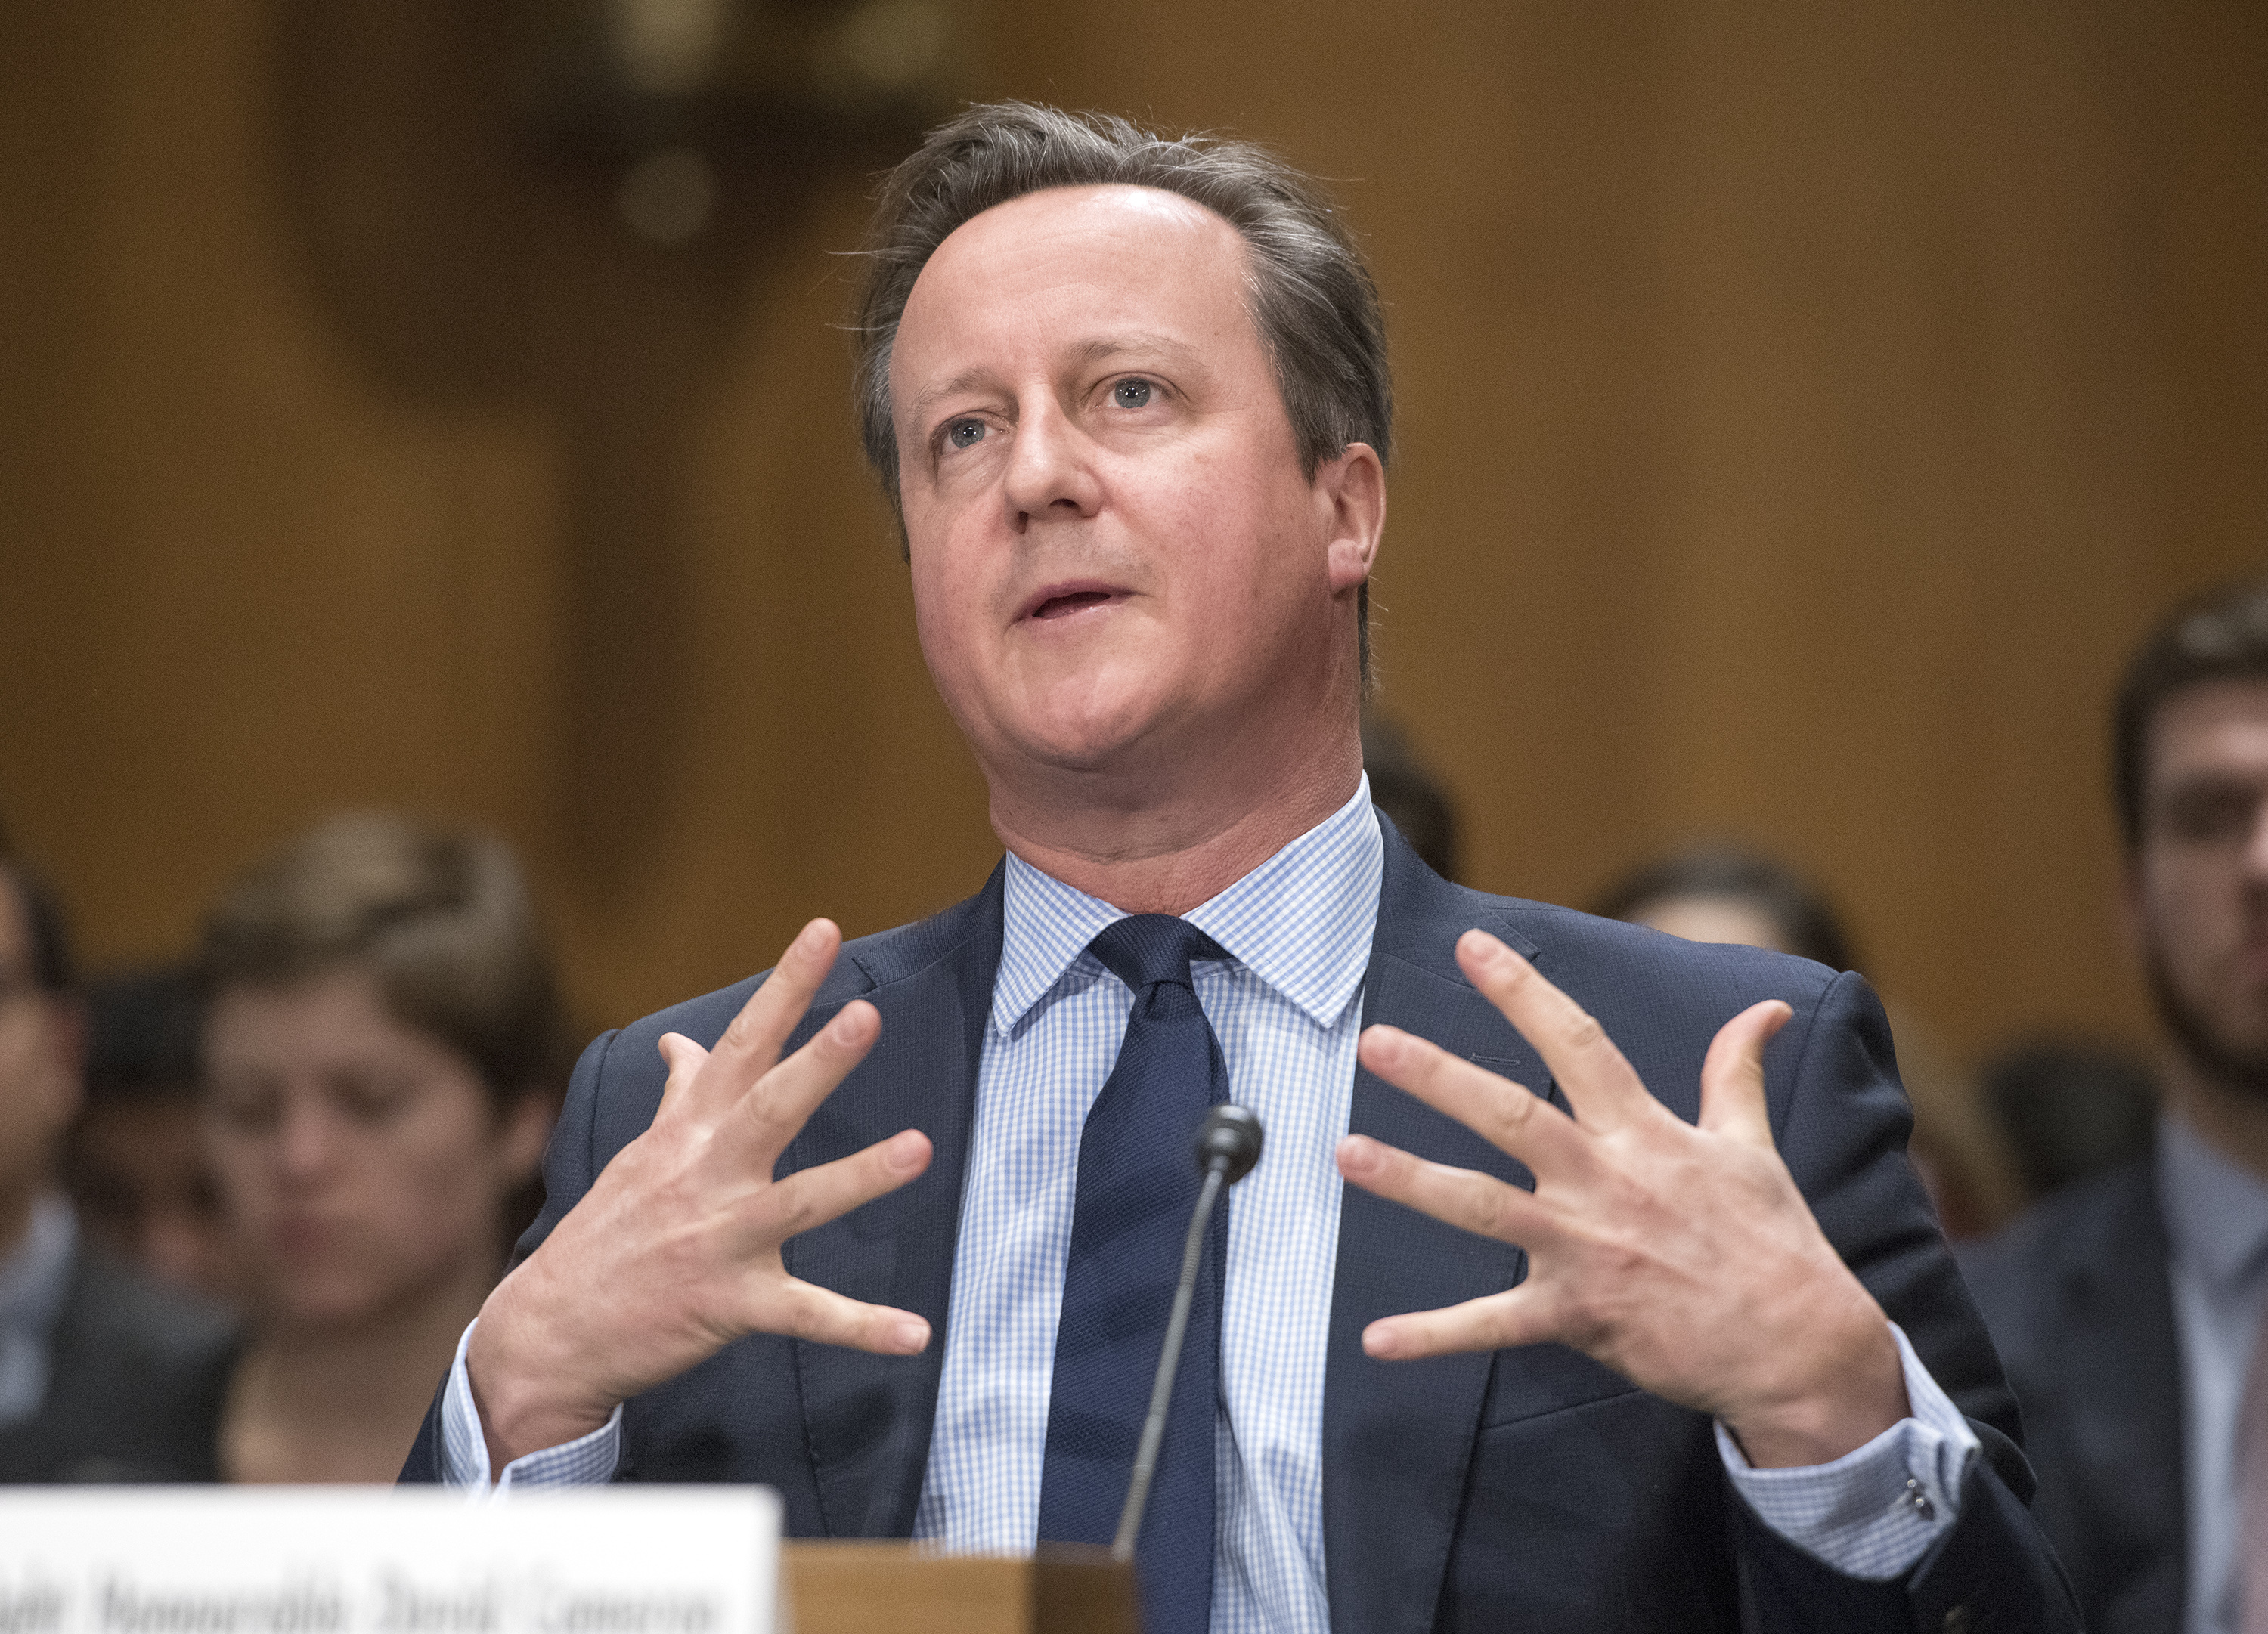 "Former Prime Minister David Cameron of the United Kingdom, Chairman, Commission on State Fragility, Growth and Development, testifies at a hearing before the United States Senate Committee on Foreign Relations ""to examine state fragility, growth, and development, focusing on designing policy approaches that work"" on Capitol Hill in Washington, DC on Tuesday, March 13, 2018. (Photo by Ron Sachs/CNP/Sipa USA)"